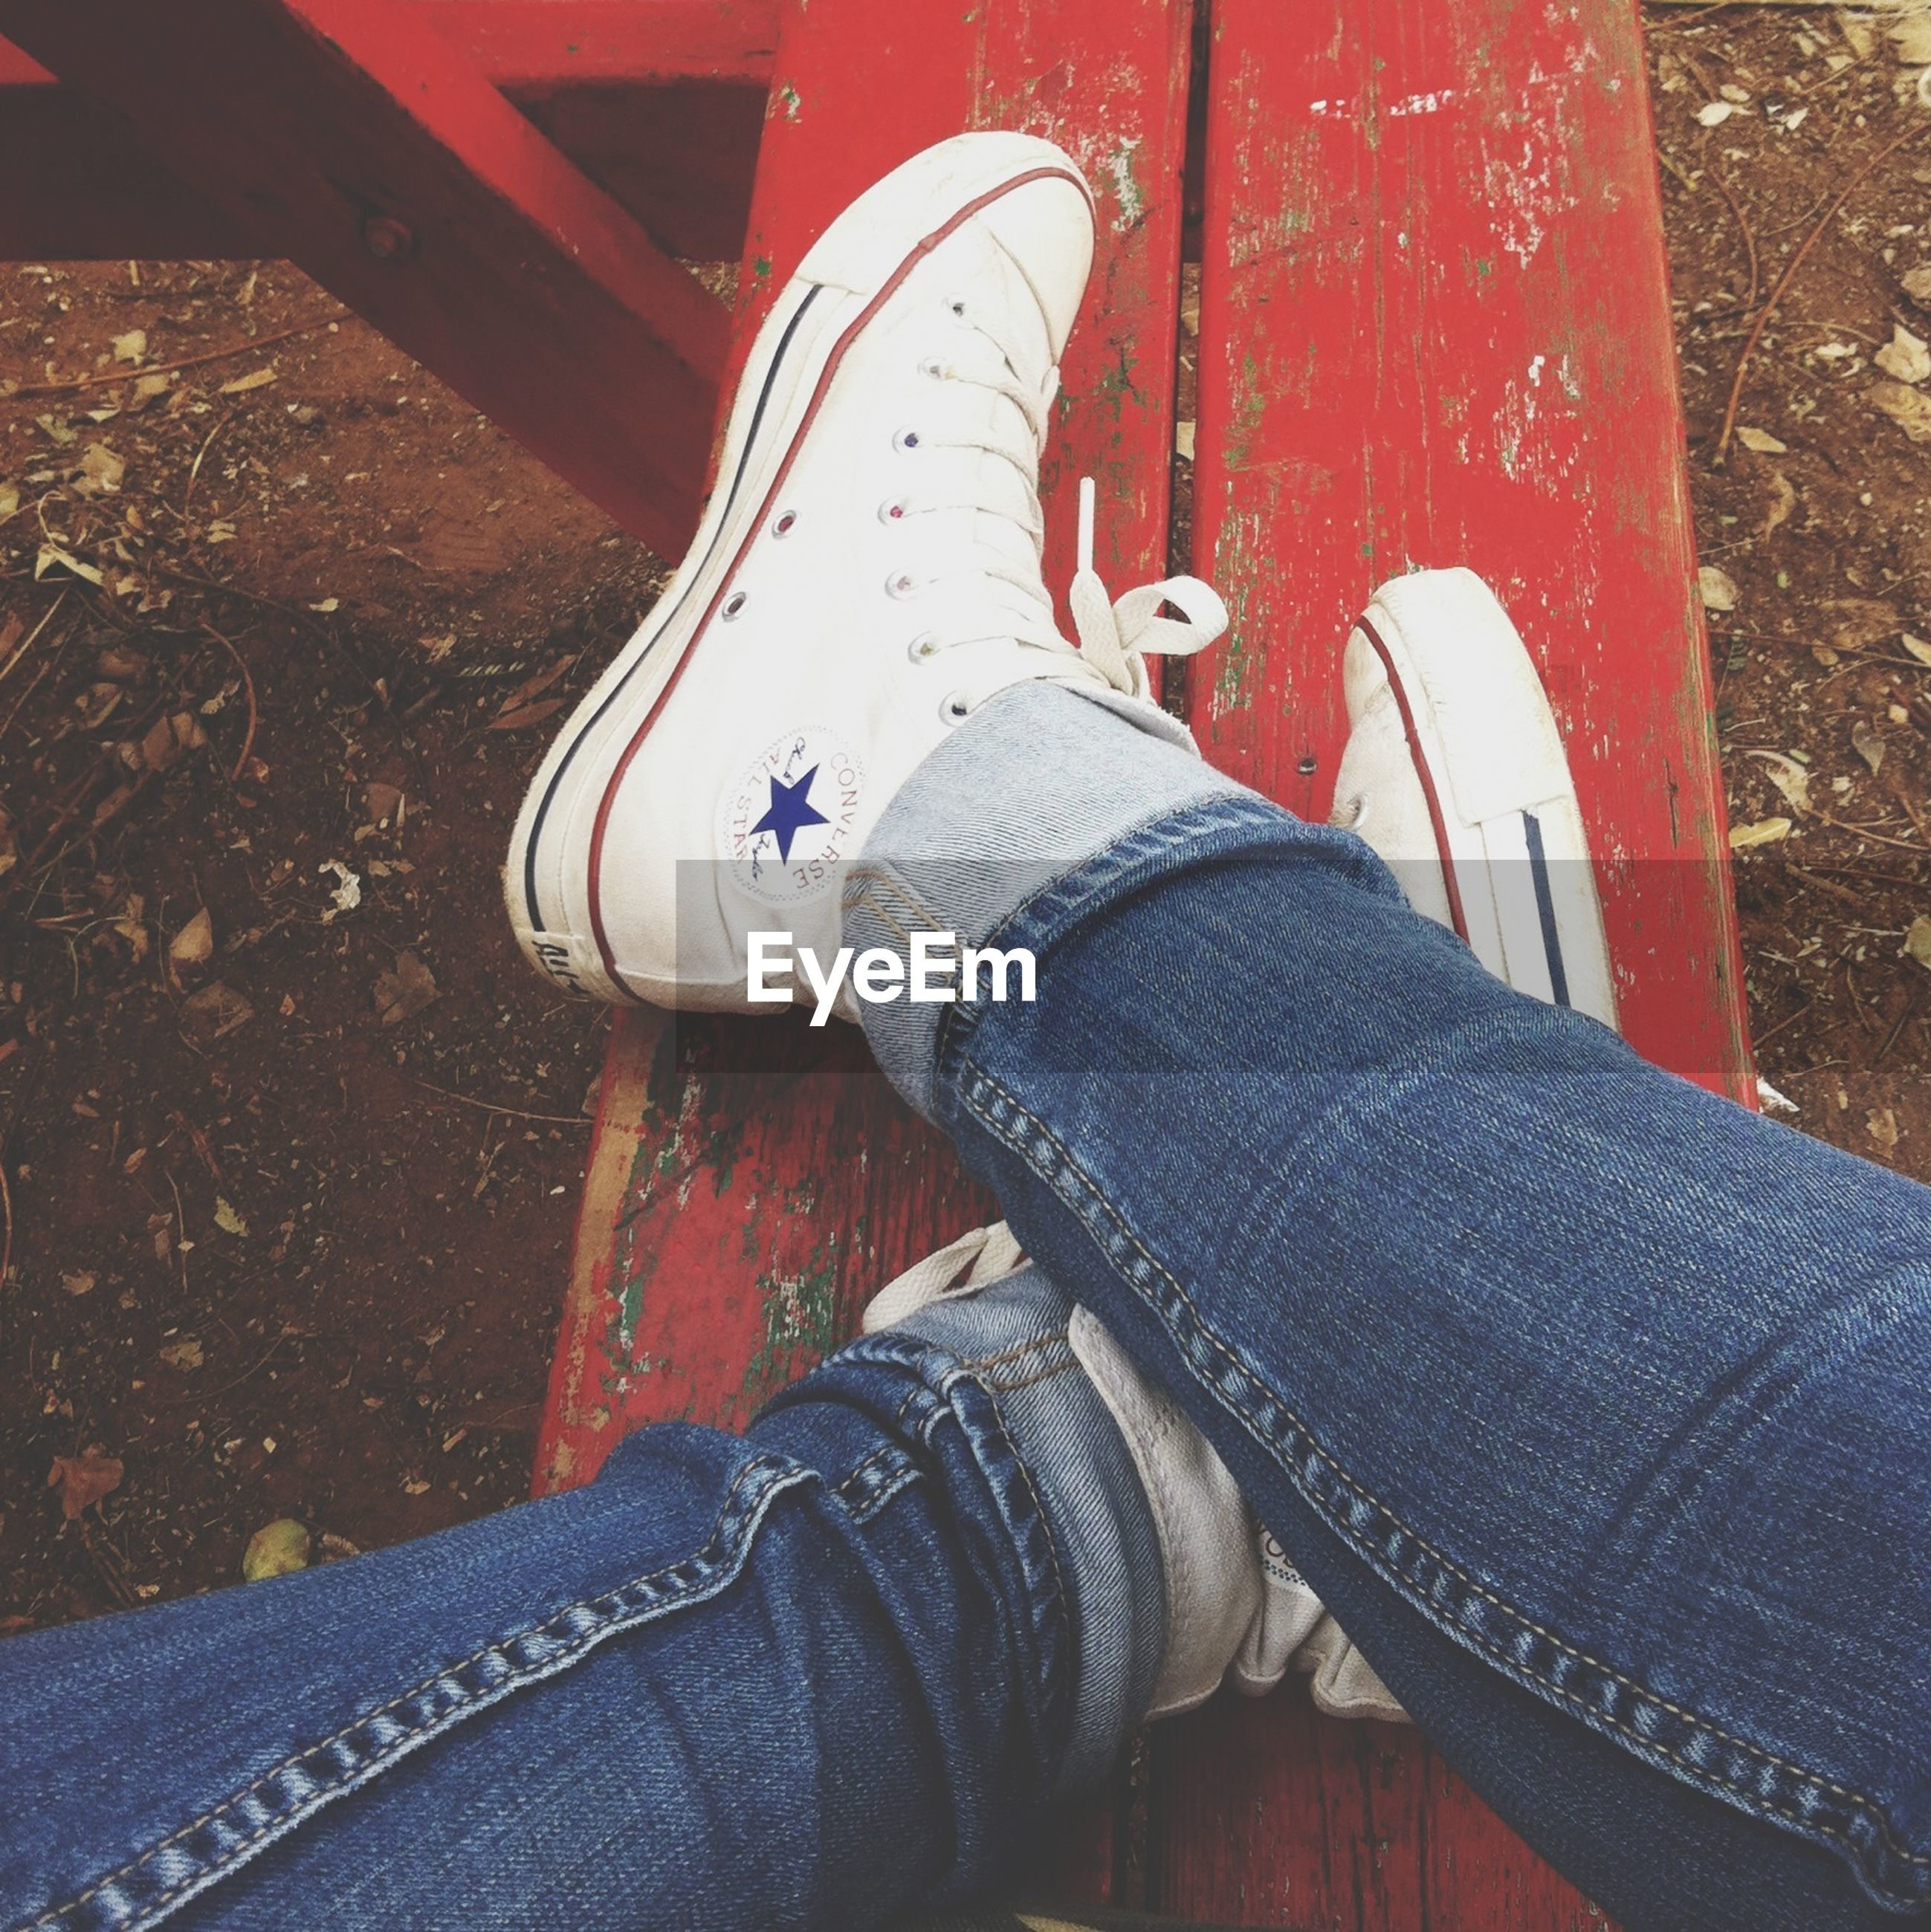 low section, person, shoe, jeans, footwear, personal perspective, human foot, lifestyles, high angle view, standing, sitting, canvas shoe, part of, relaxation, leisure activity, legs crossed at ankle, close-up